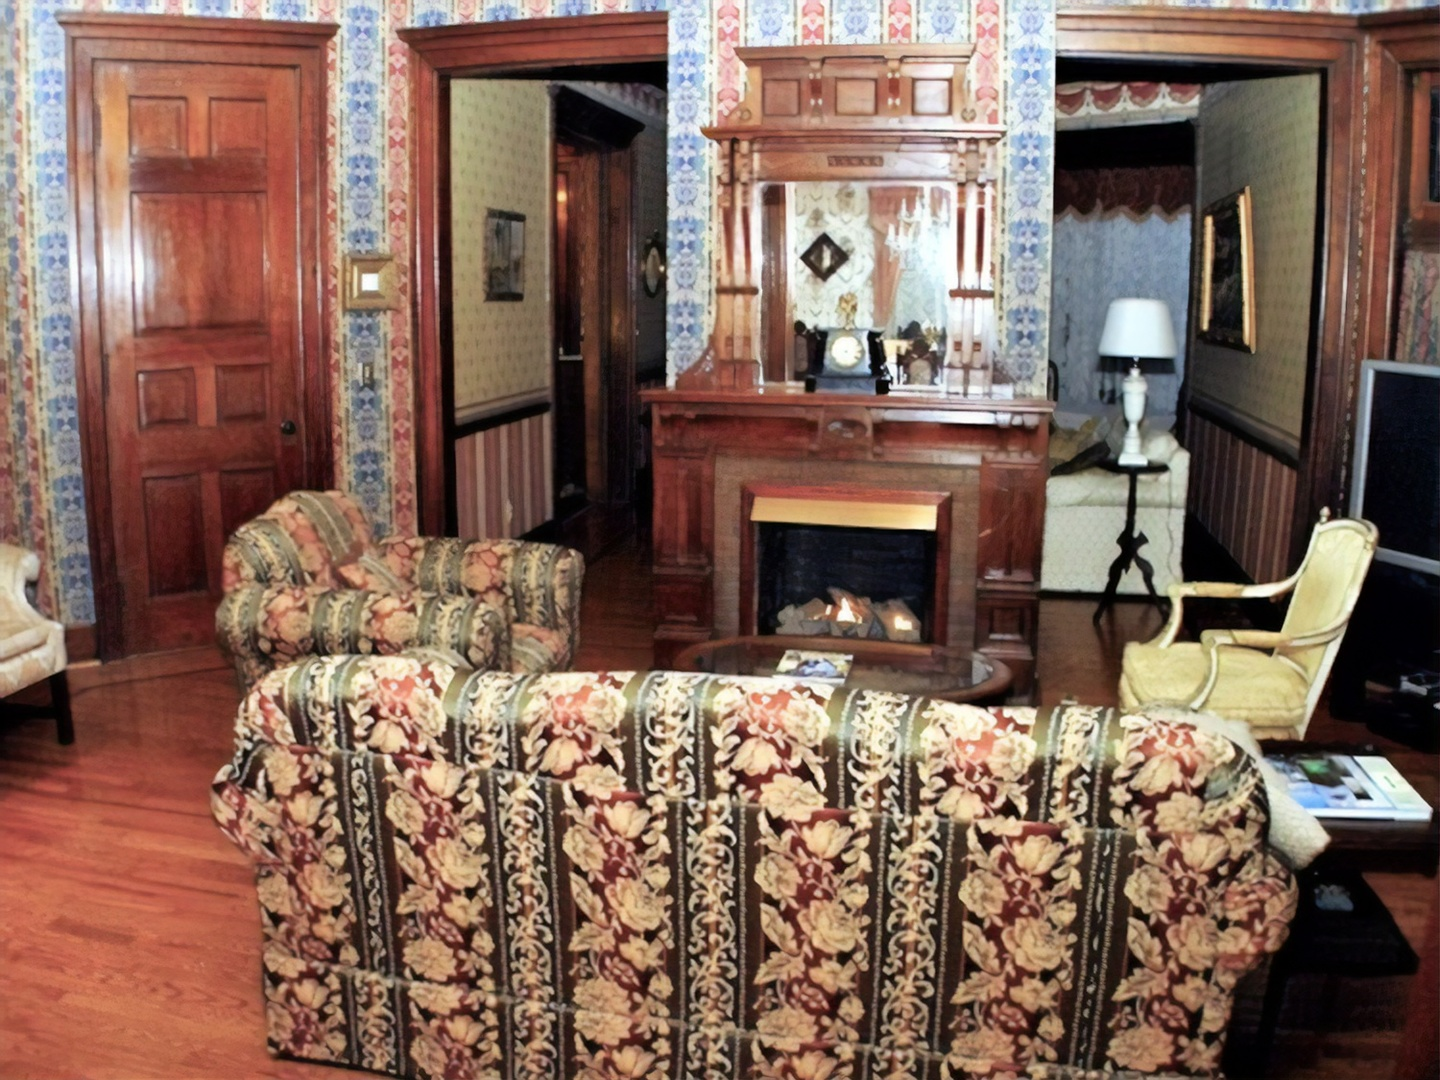 A living room filled with furniture and a fireplace at Herrold on Hill Bed and Breakfast.